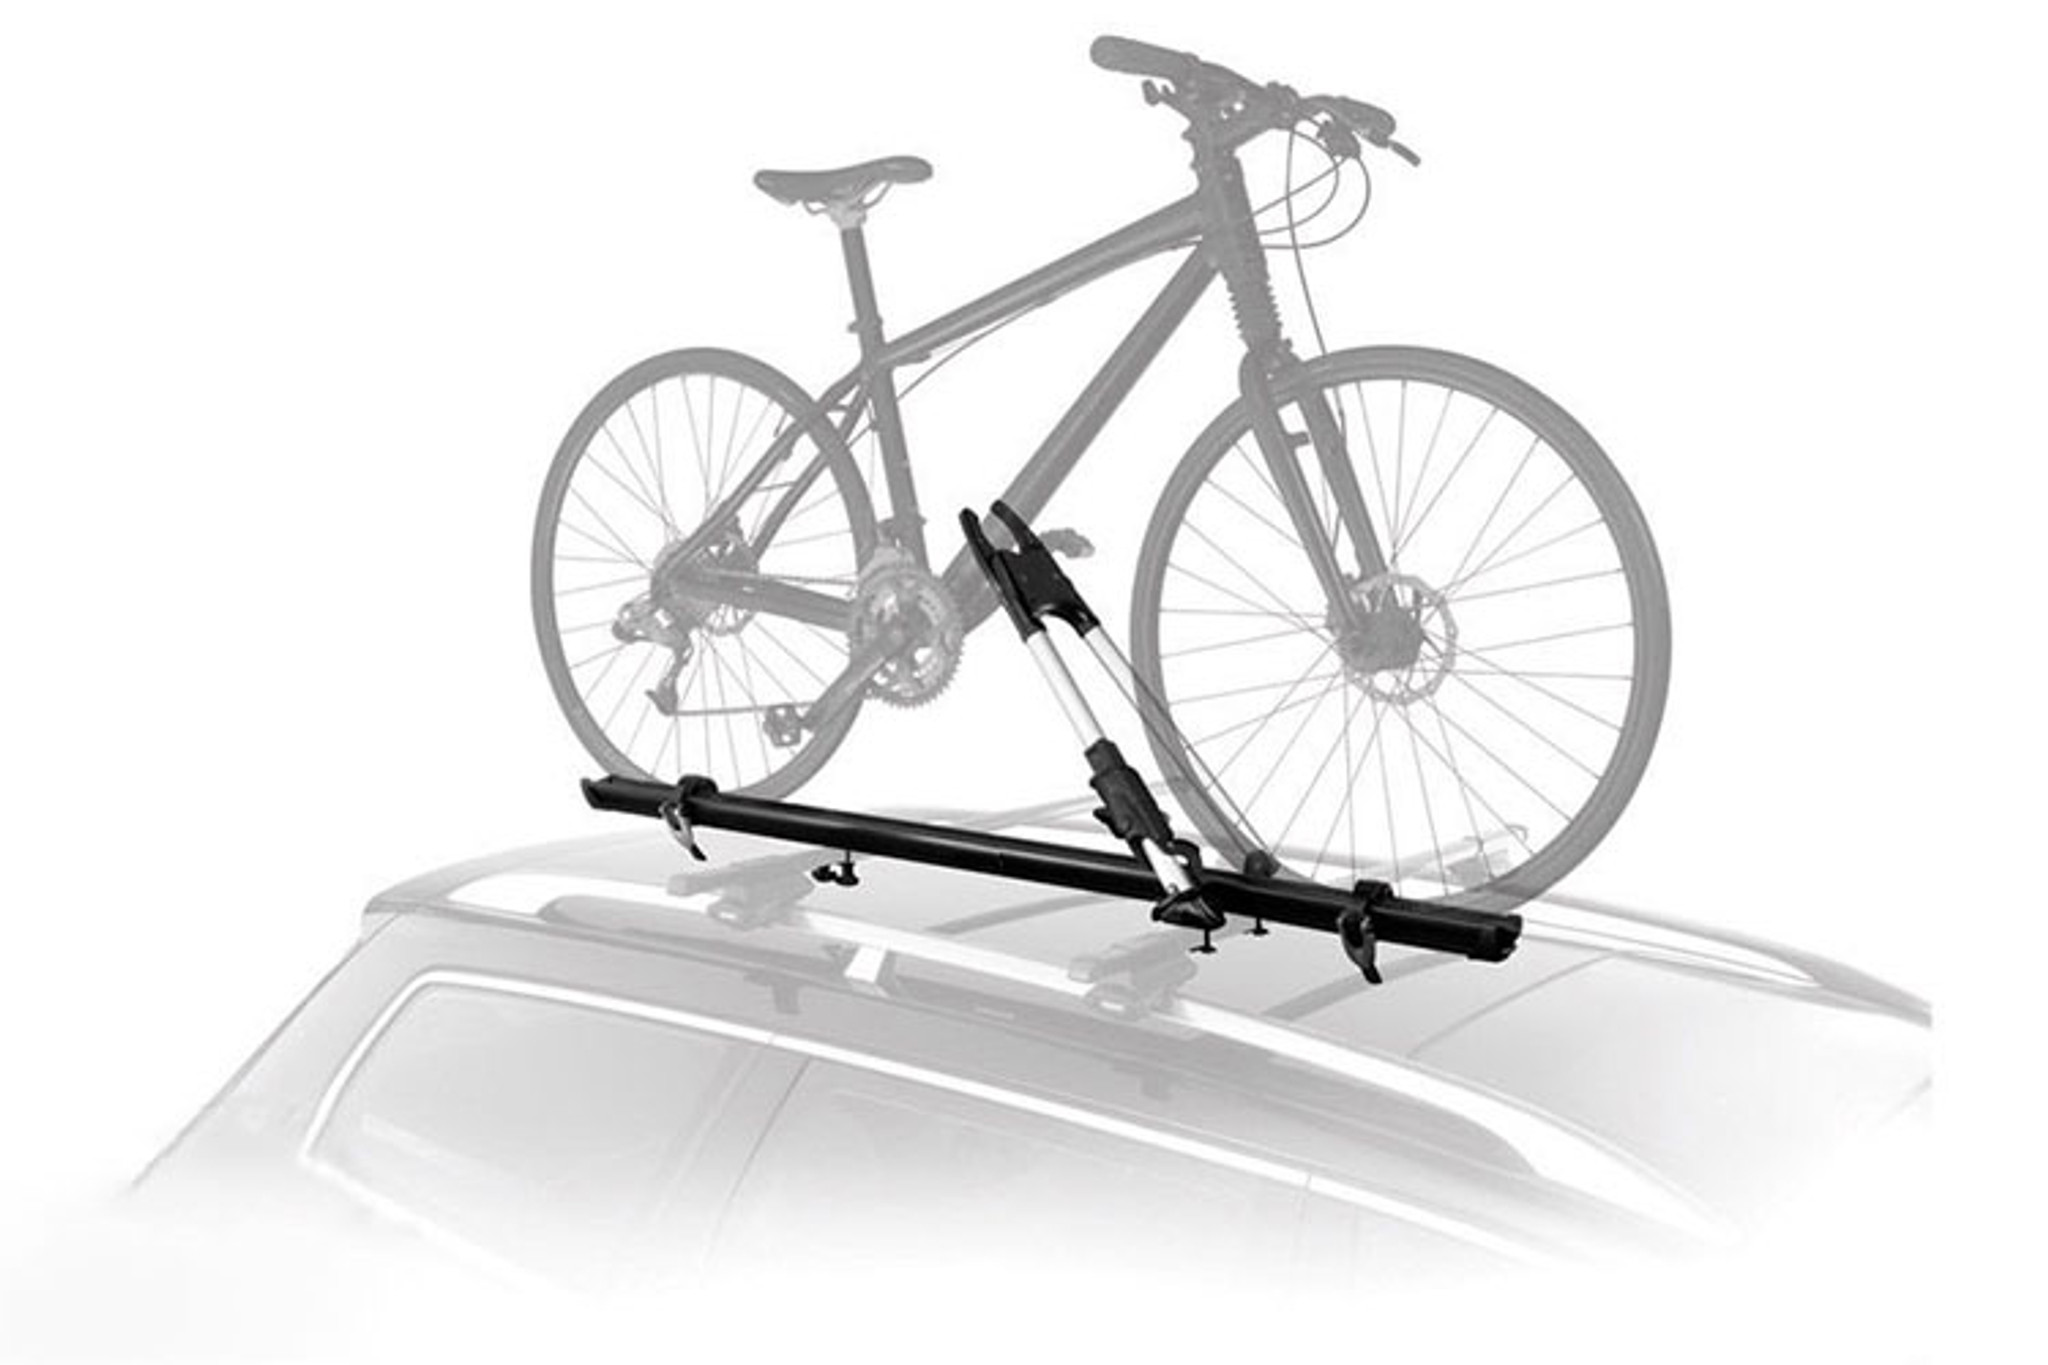 Thule 599 Big Mouth Oem Version With Universal Mounting Hardware